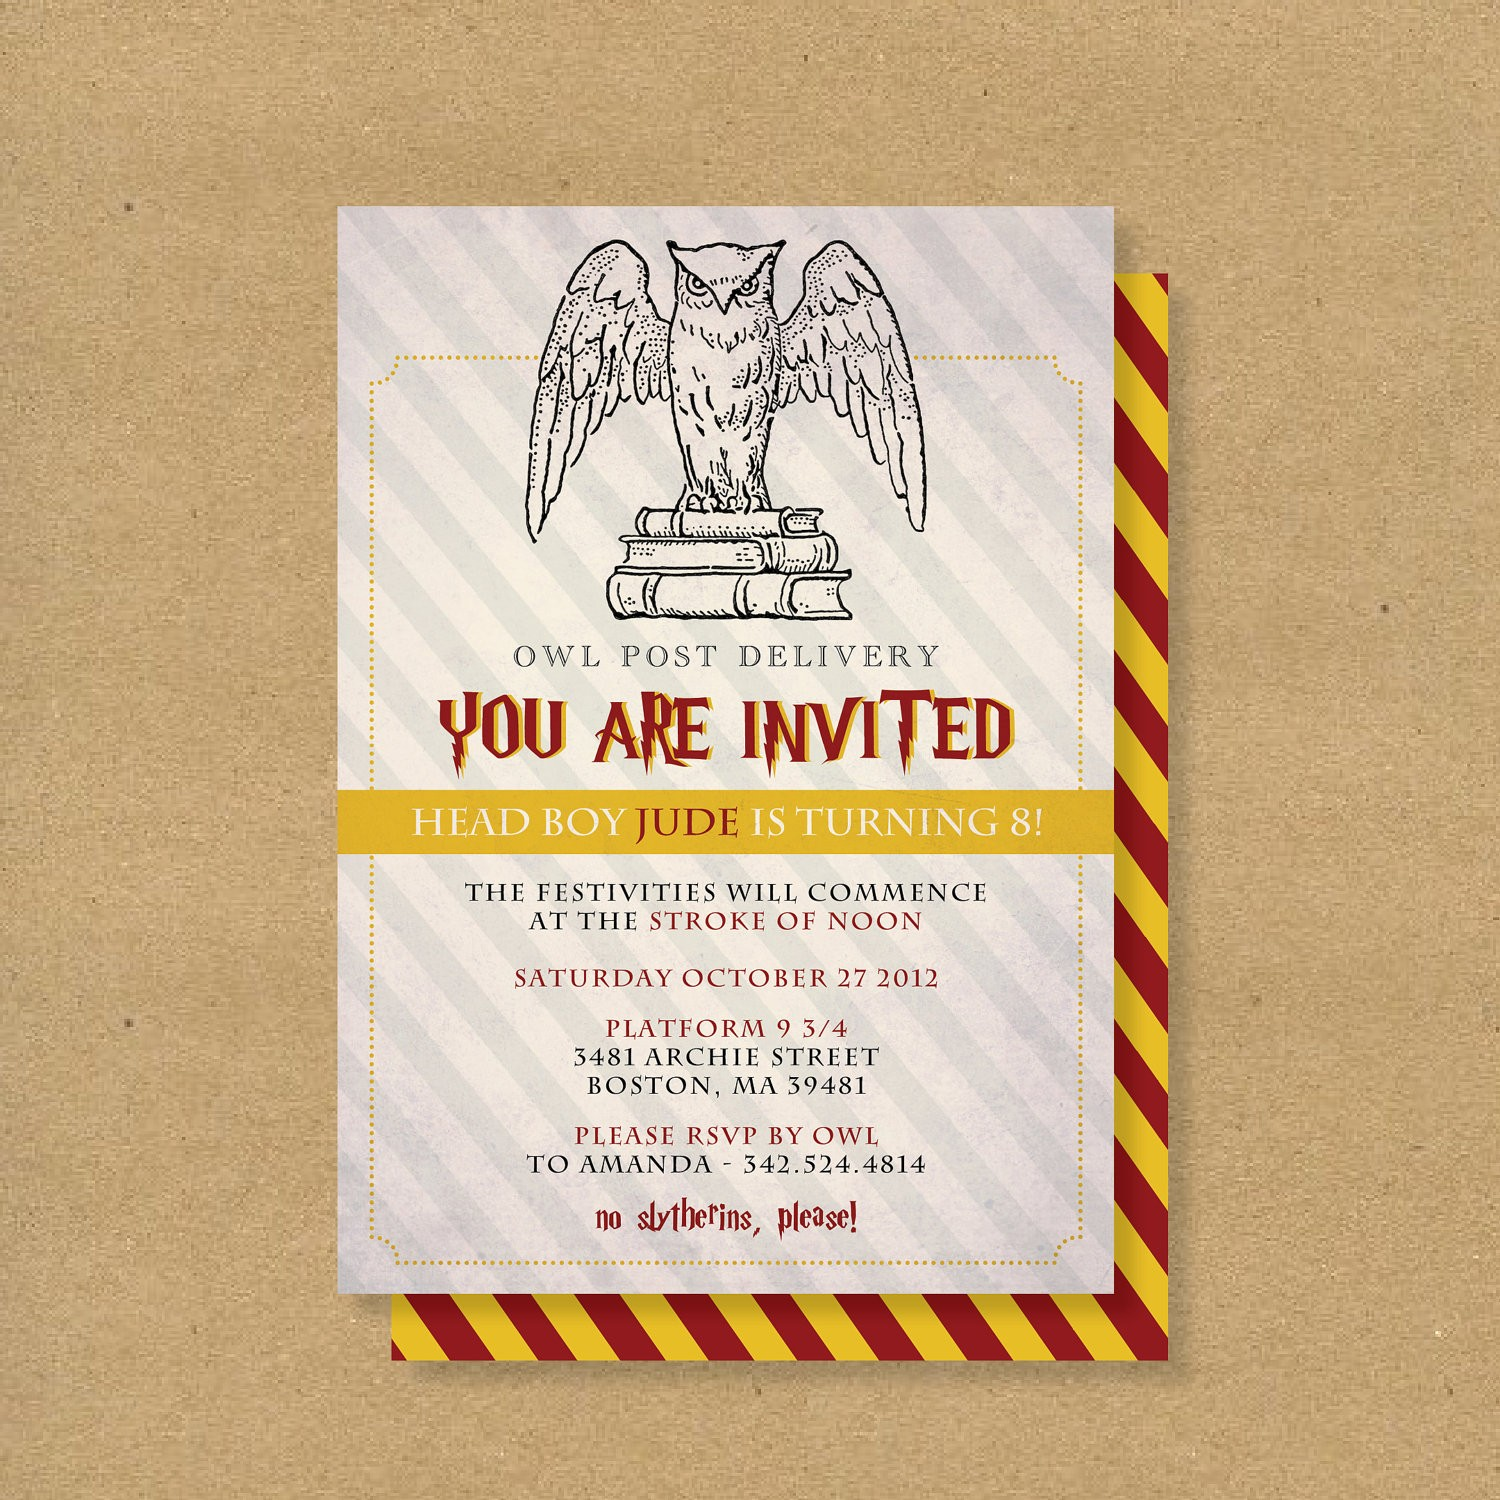 harry potter birthday invitation ideas ; halloween-birthday-invitations-new-harry-potter-birthday-party-invitations-for-additional-artistic-of-halloween-birthday-invitations